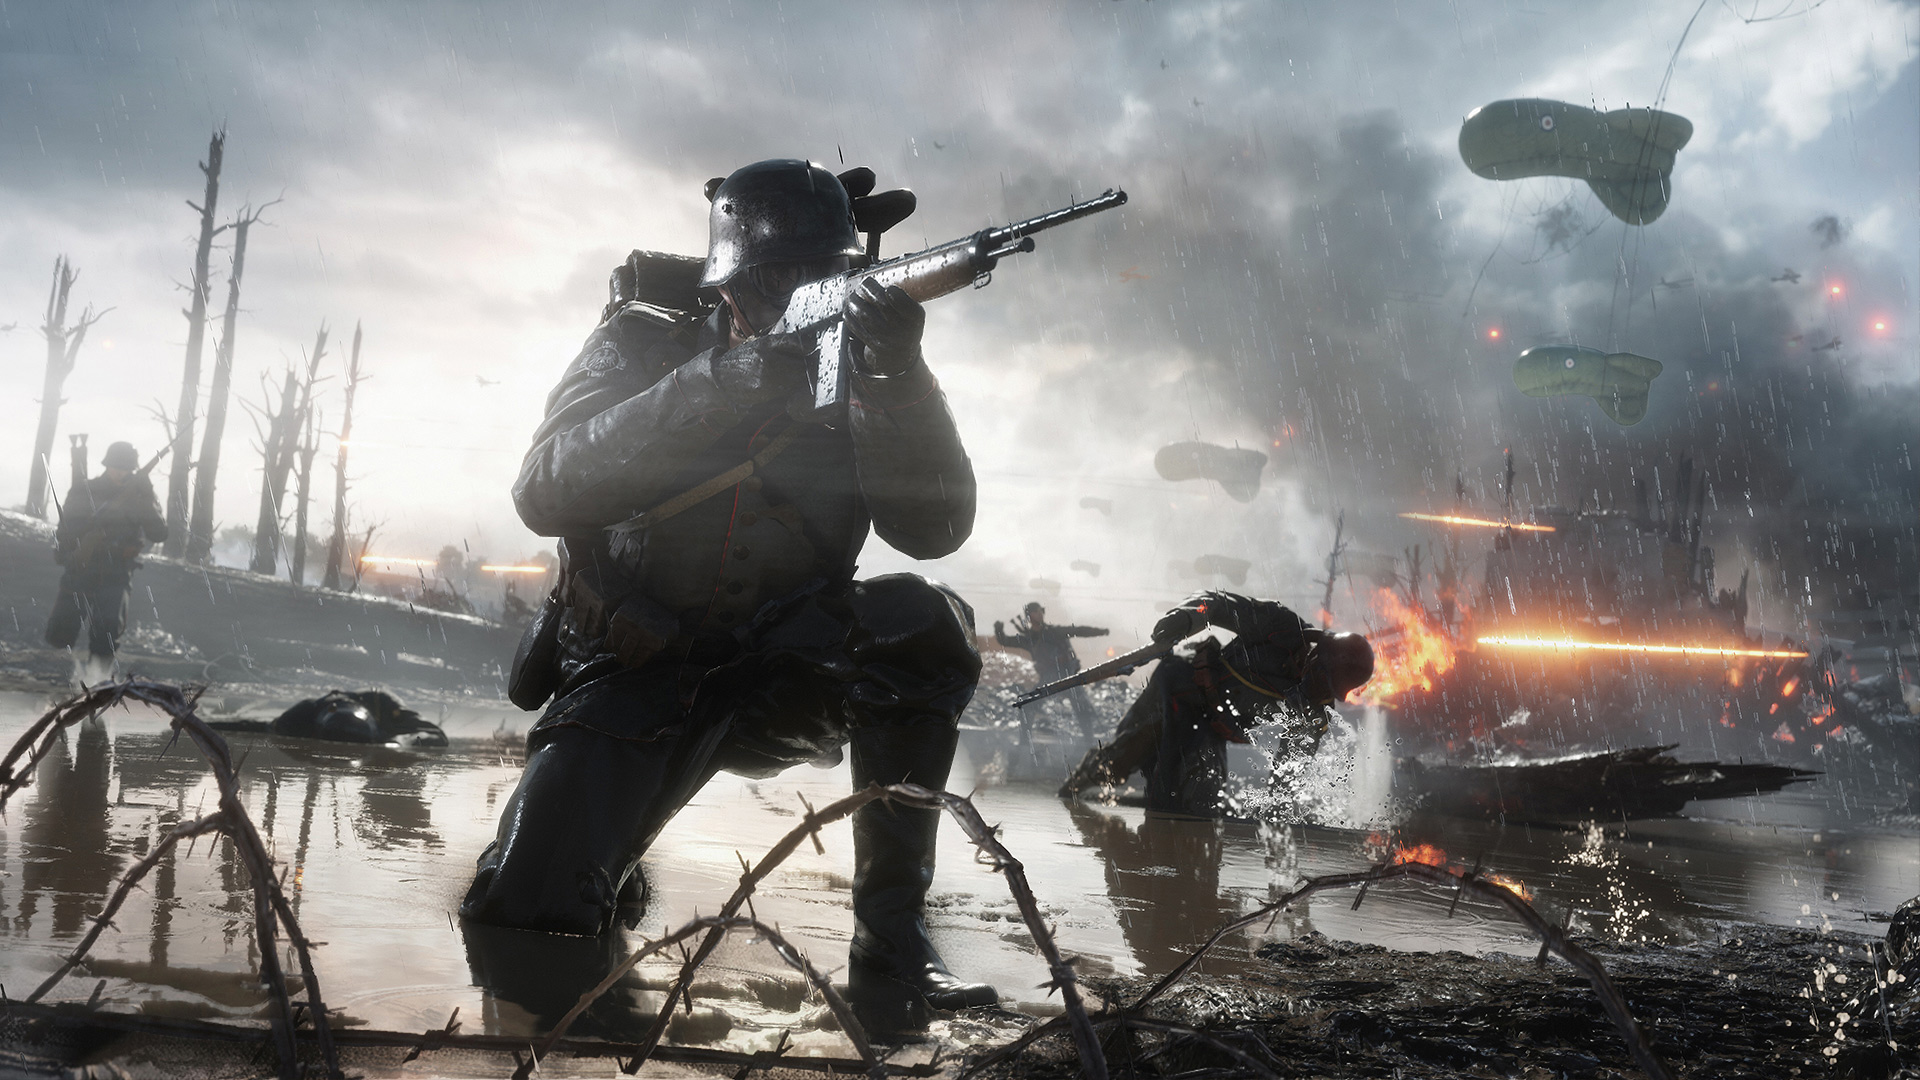 Battlefield 1 Update Today Adds Map, Balance Changes